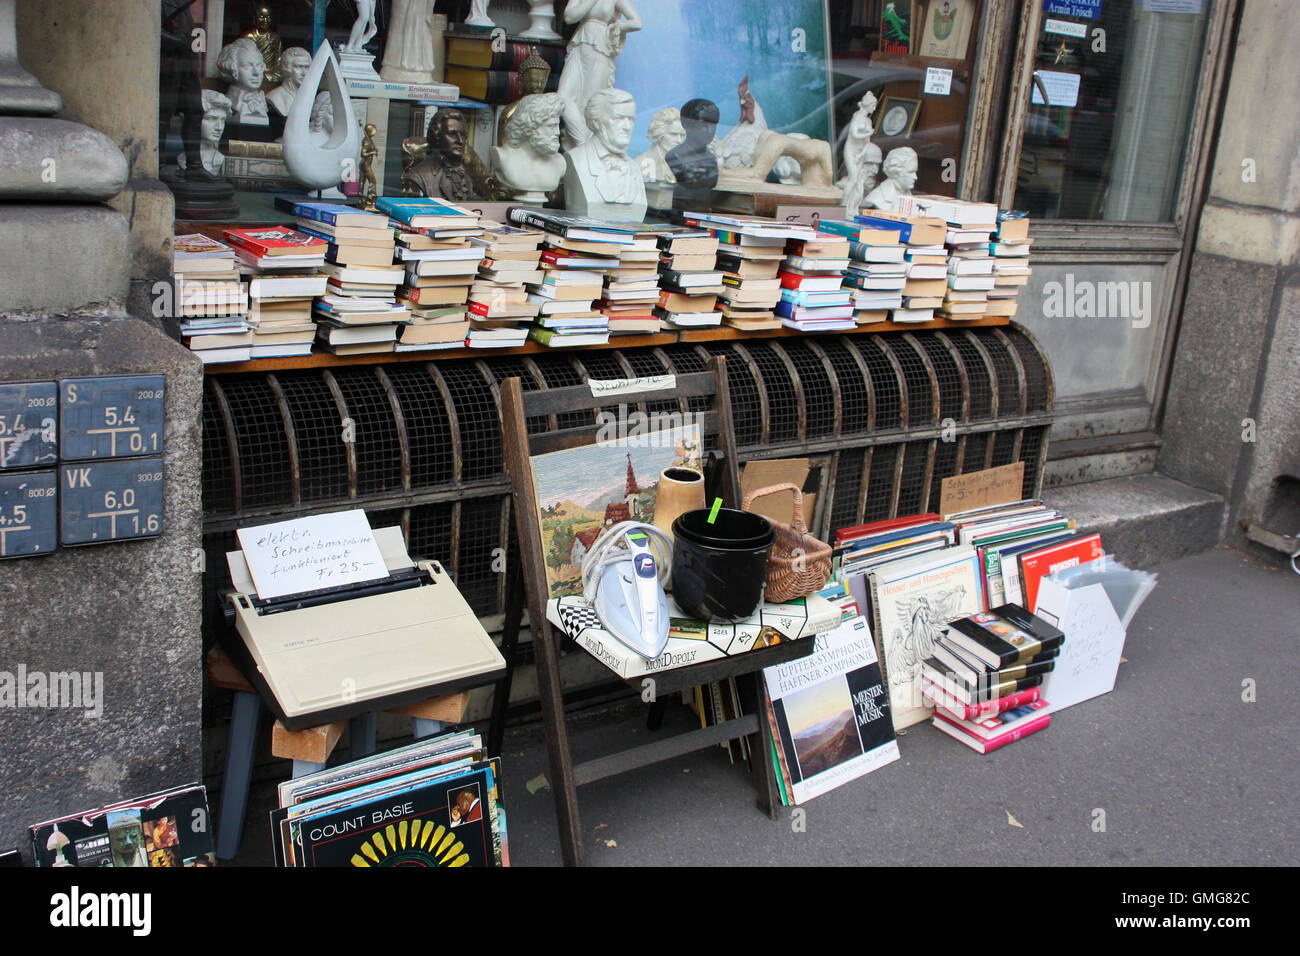 Selling books at a flea market - Stock Image